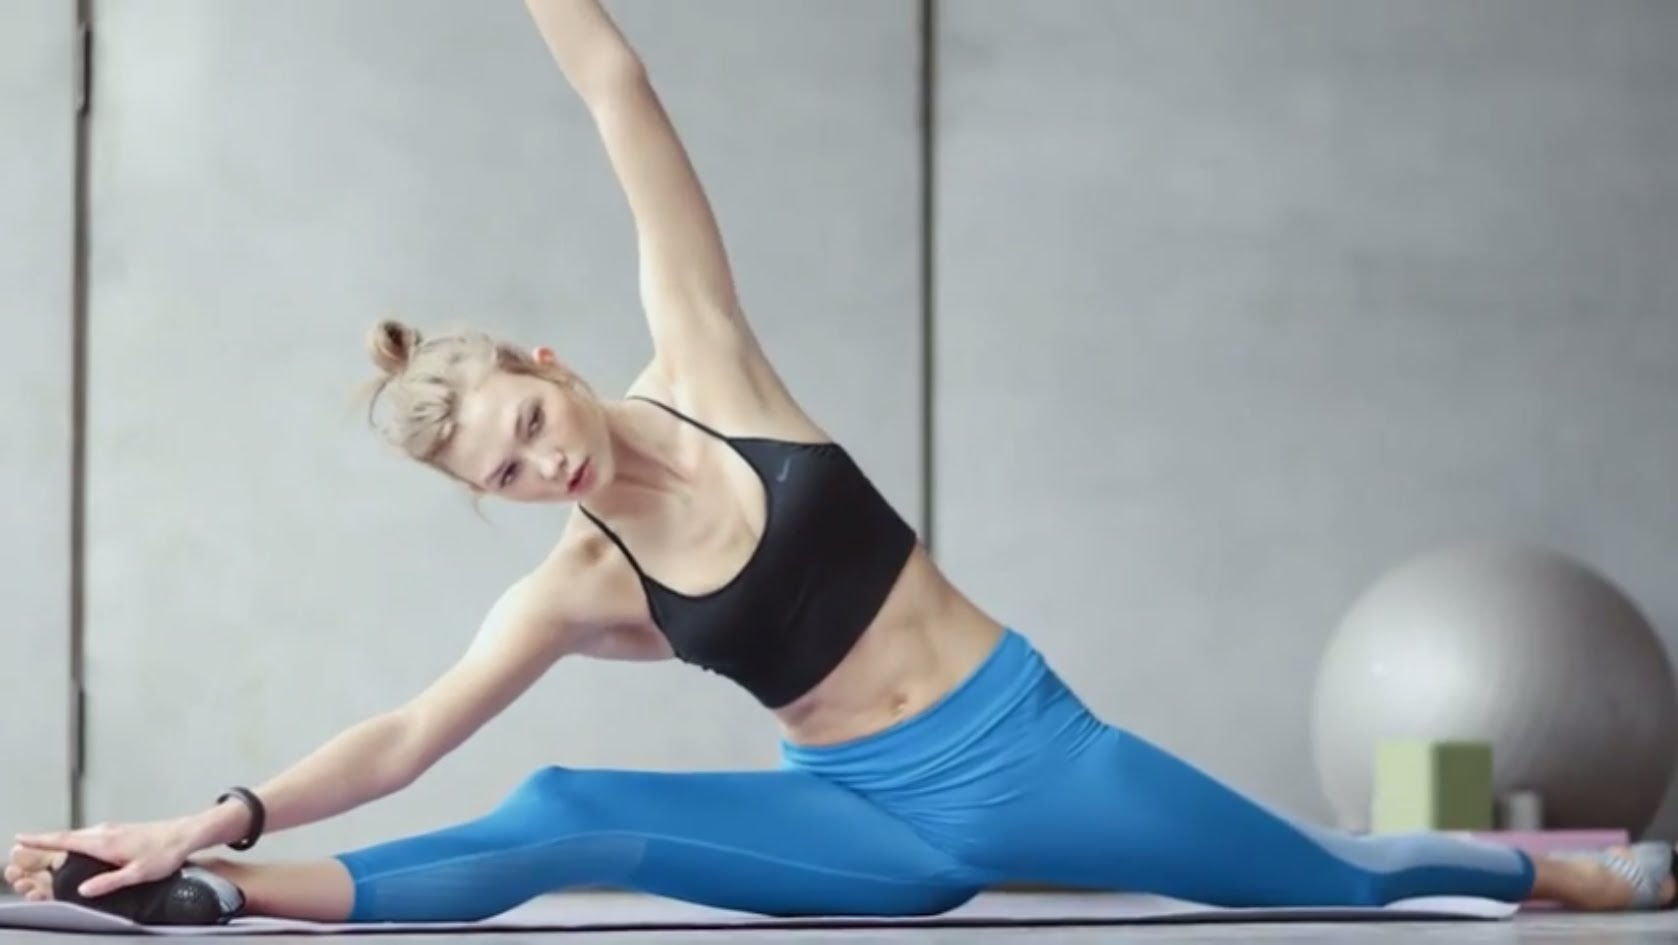 Karlie Kloss – A Day With Nike